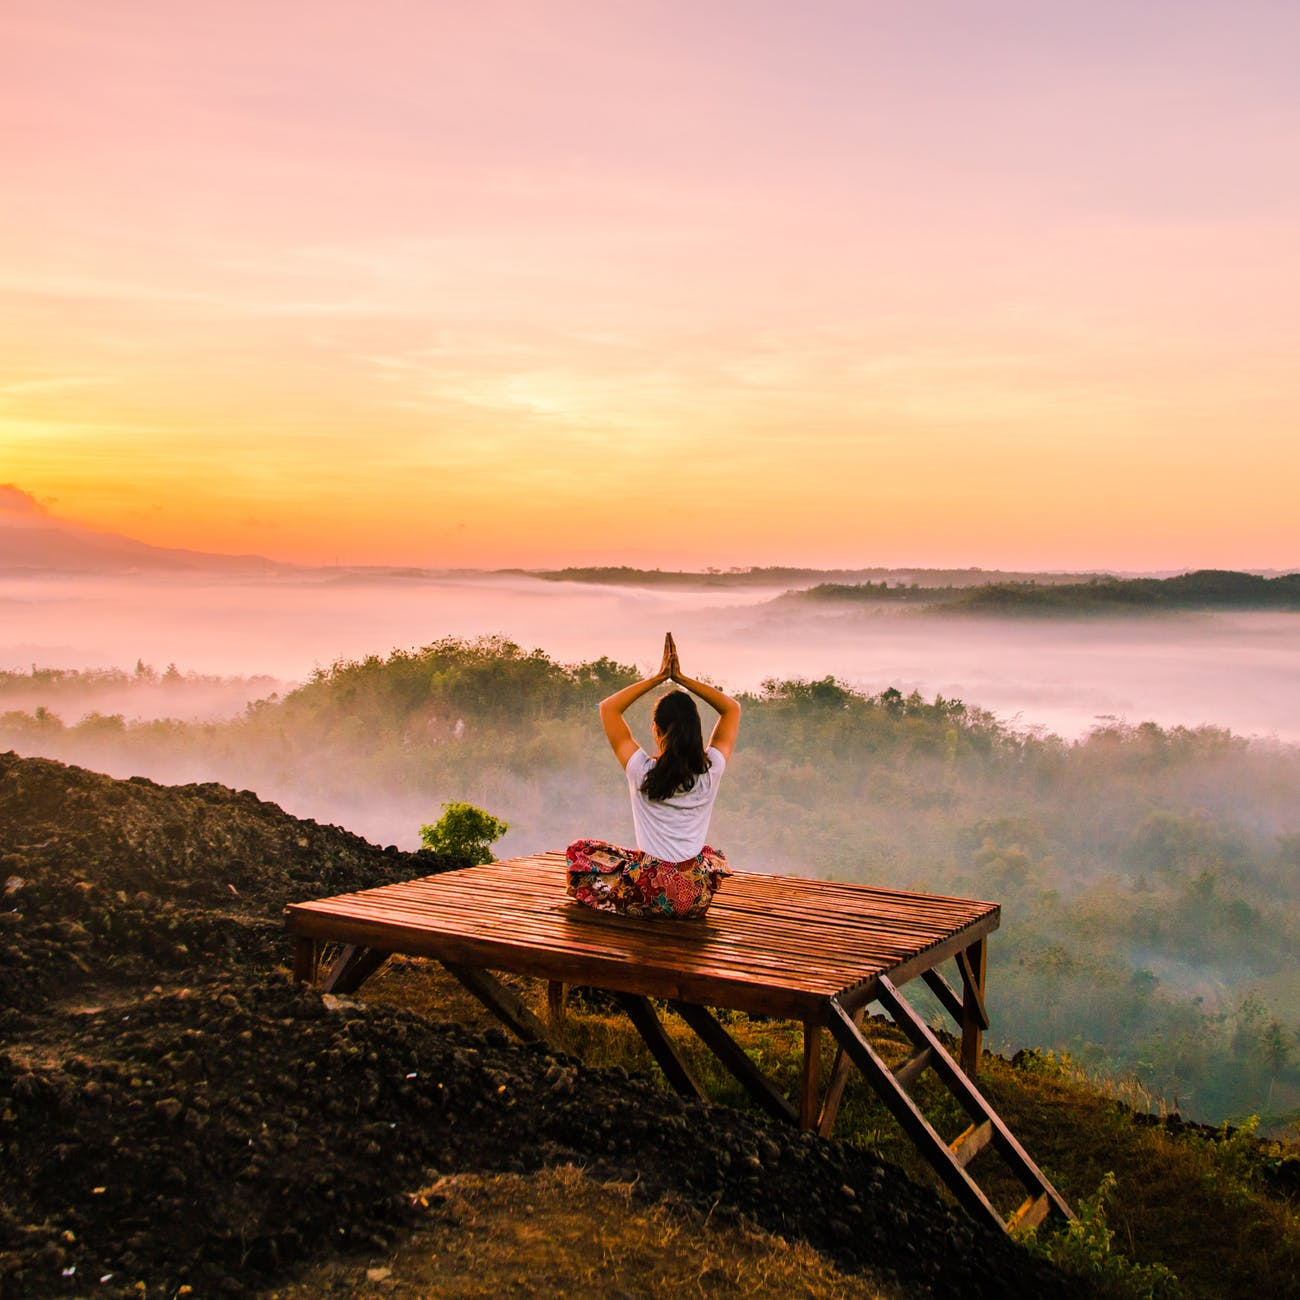 woman yoga meditation at sunrise, self-care or sharpening the saw